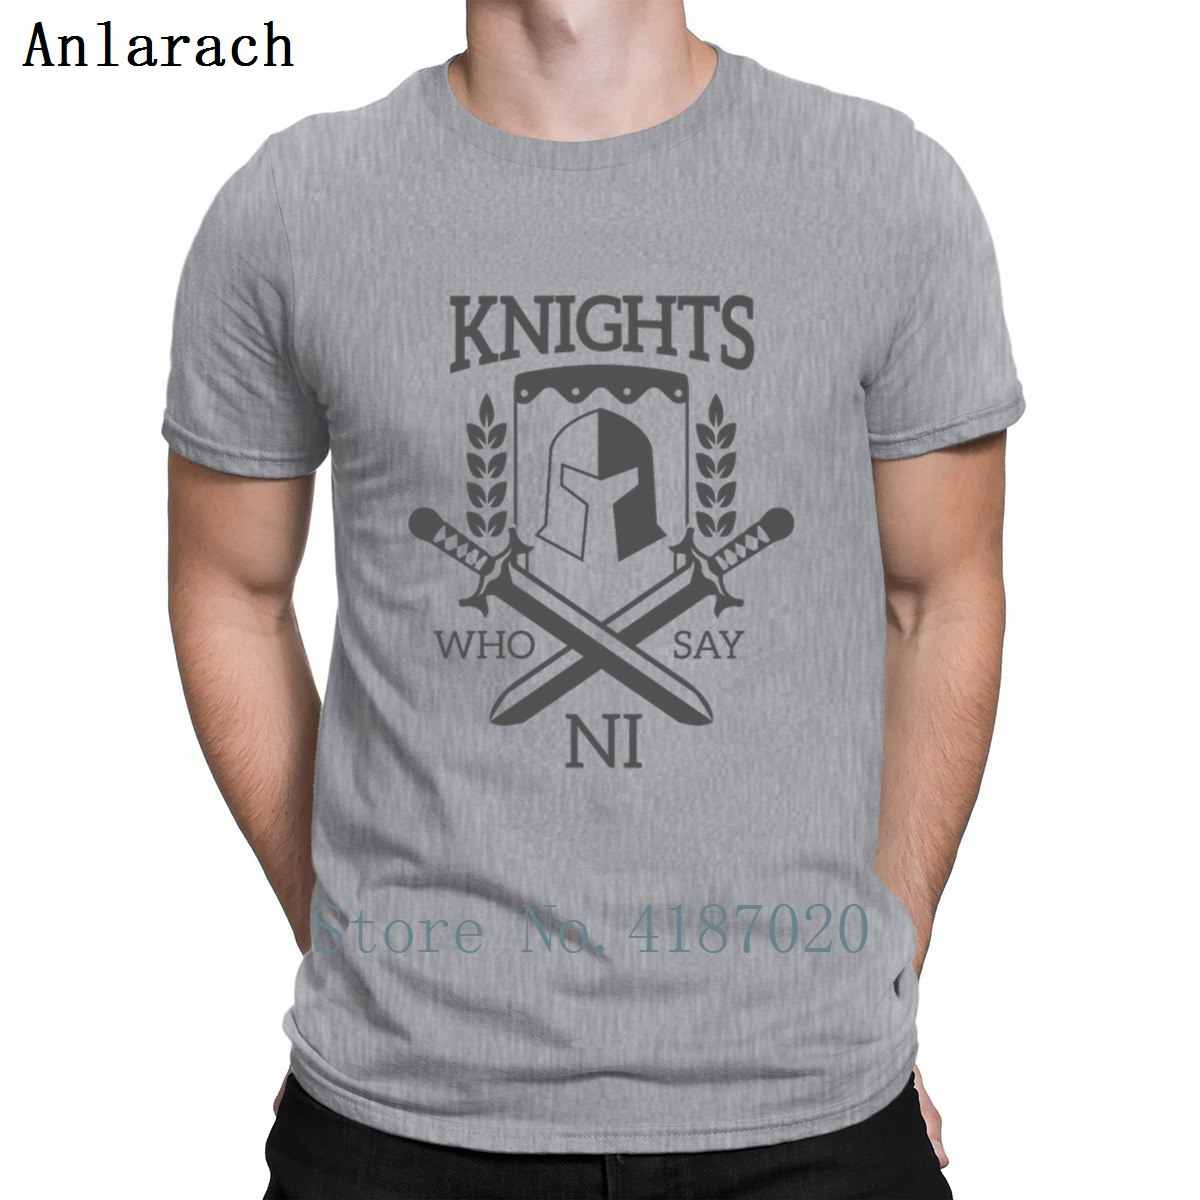 Monty Python Knights Who Say Ni T-Shirt Tee Top Print Summer Leisure T  Shirt For Men The New Male Size S-3xl Cute